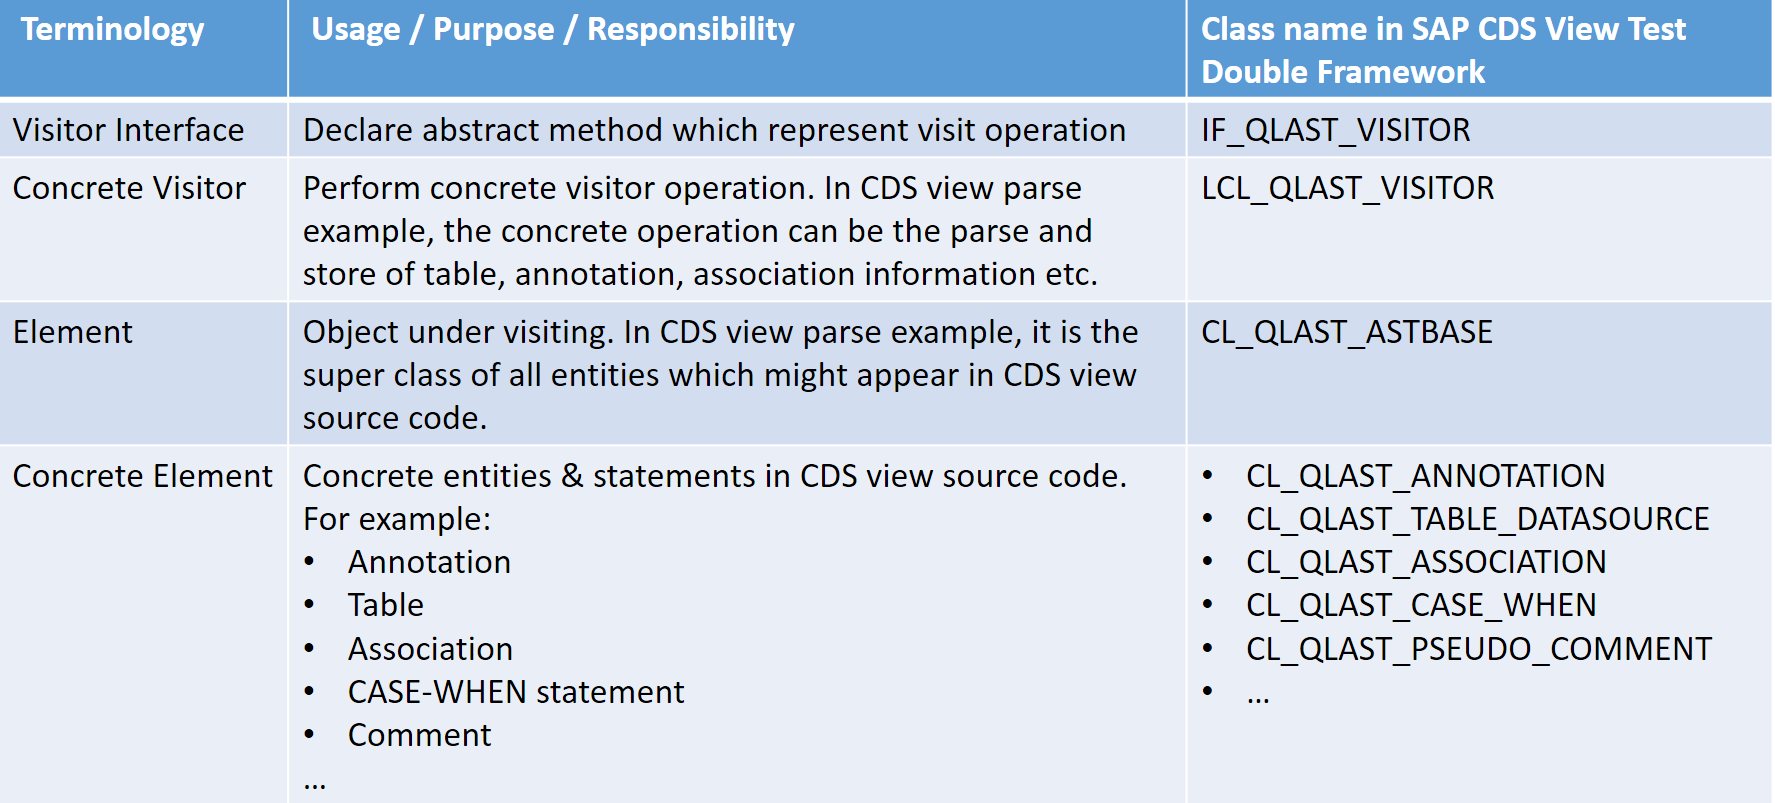 Visitor pattern used in CDS View Test double framework